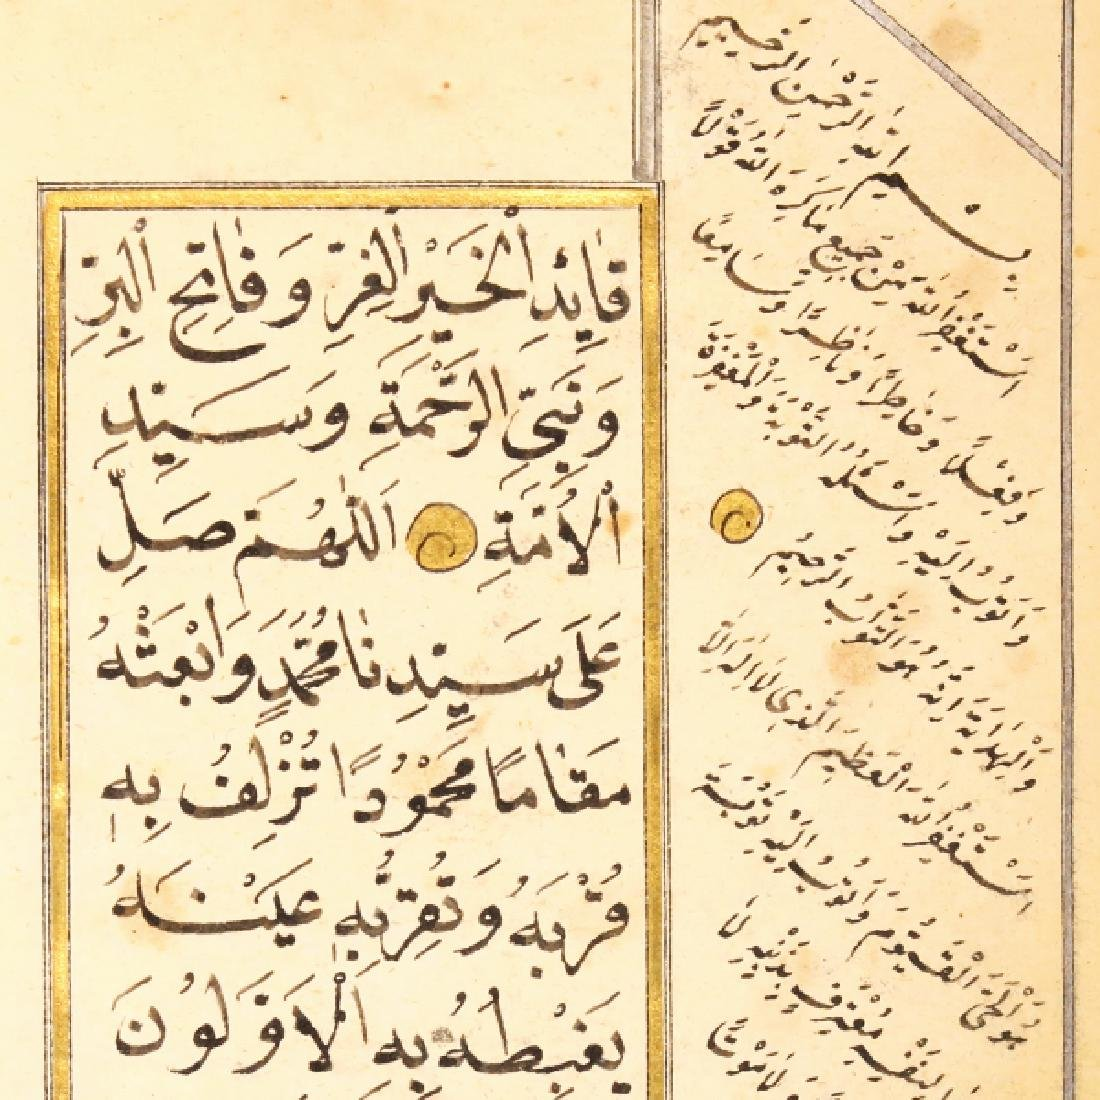 Arabic Illuminated/Gilt Manuscript, Near East, c. 16th - 2